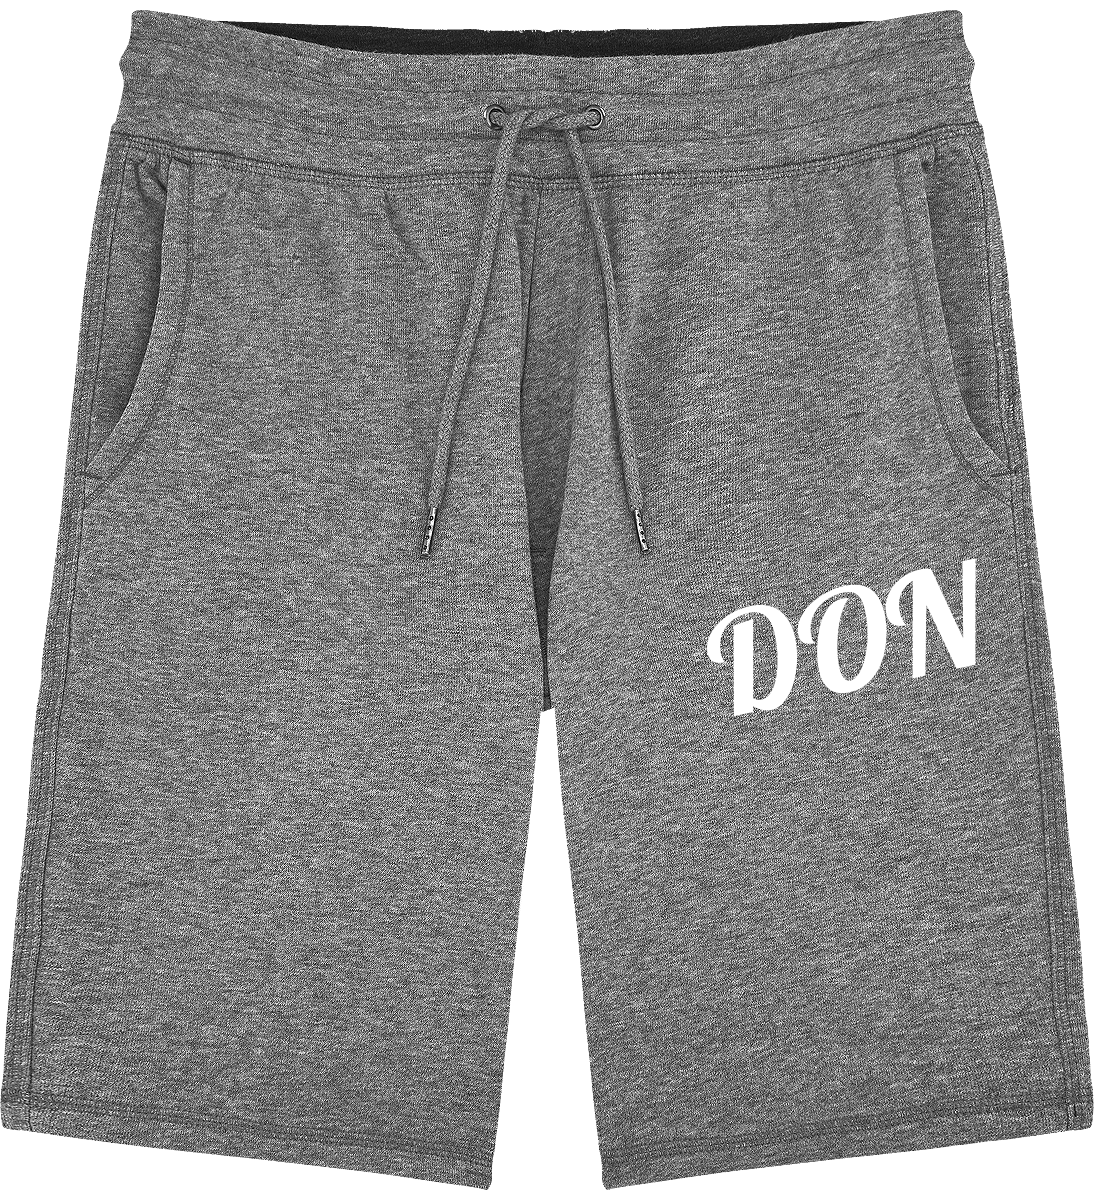 Mens Official Don Jogging Shorts - Mid Heather Grey / S - Homme>Vêtements De Sport